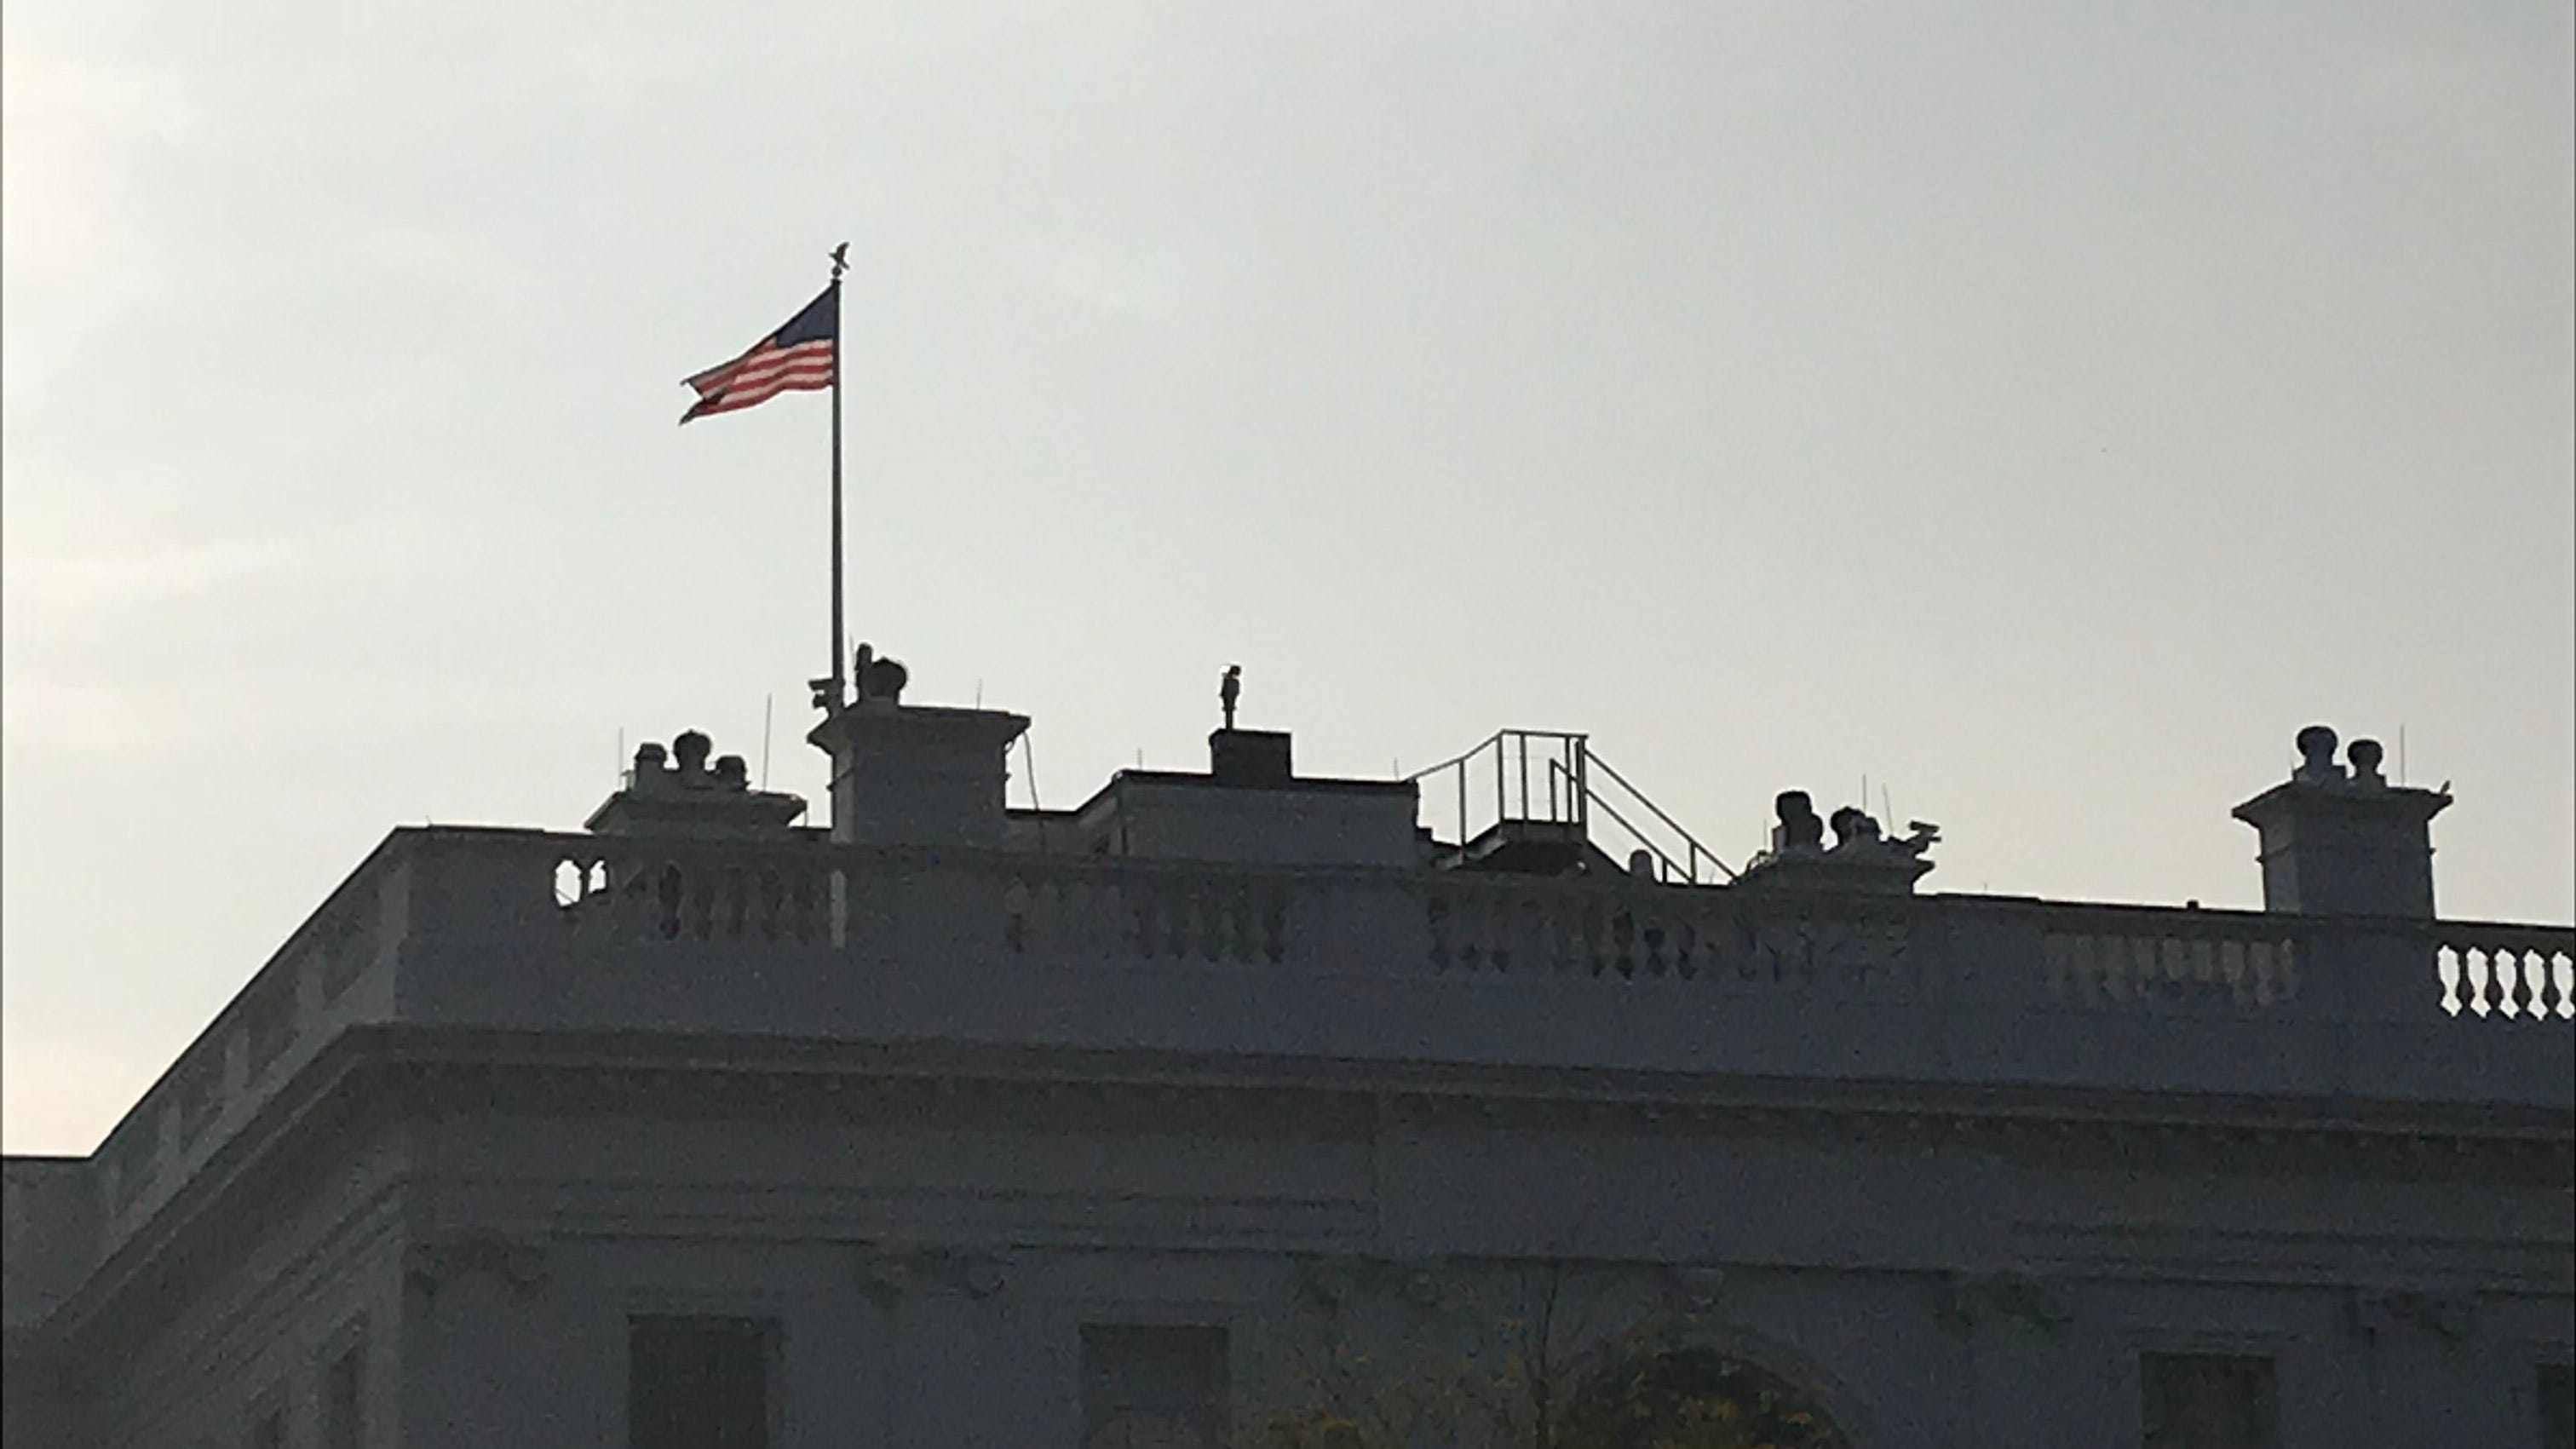 White House flags return to half-staff to honor Sen. John McCain after outcry